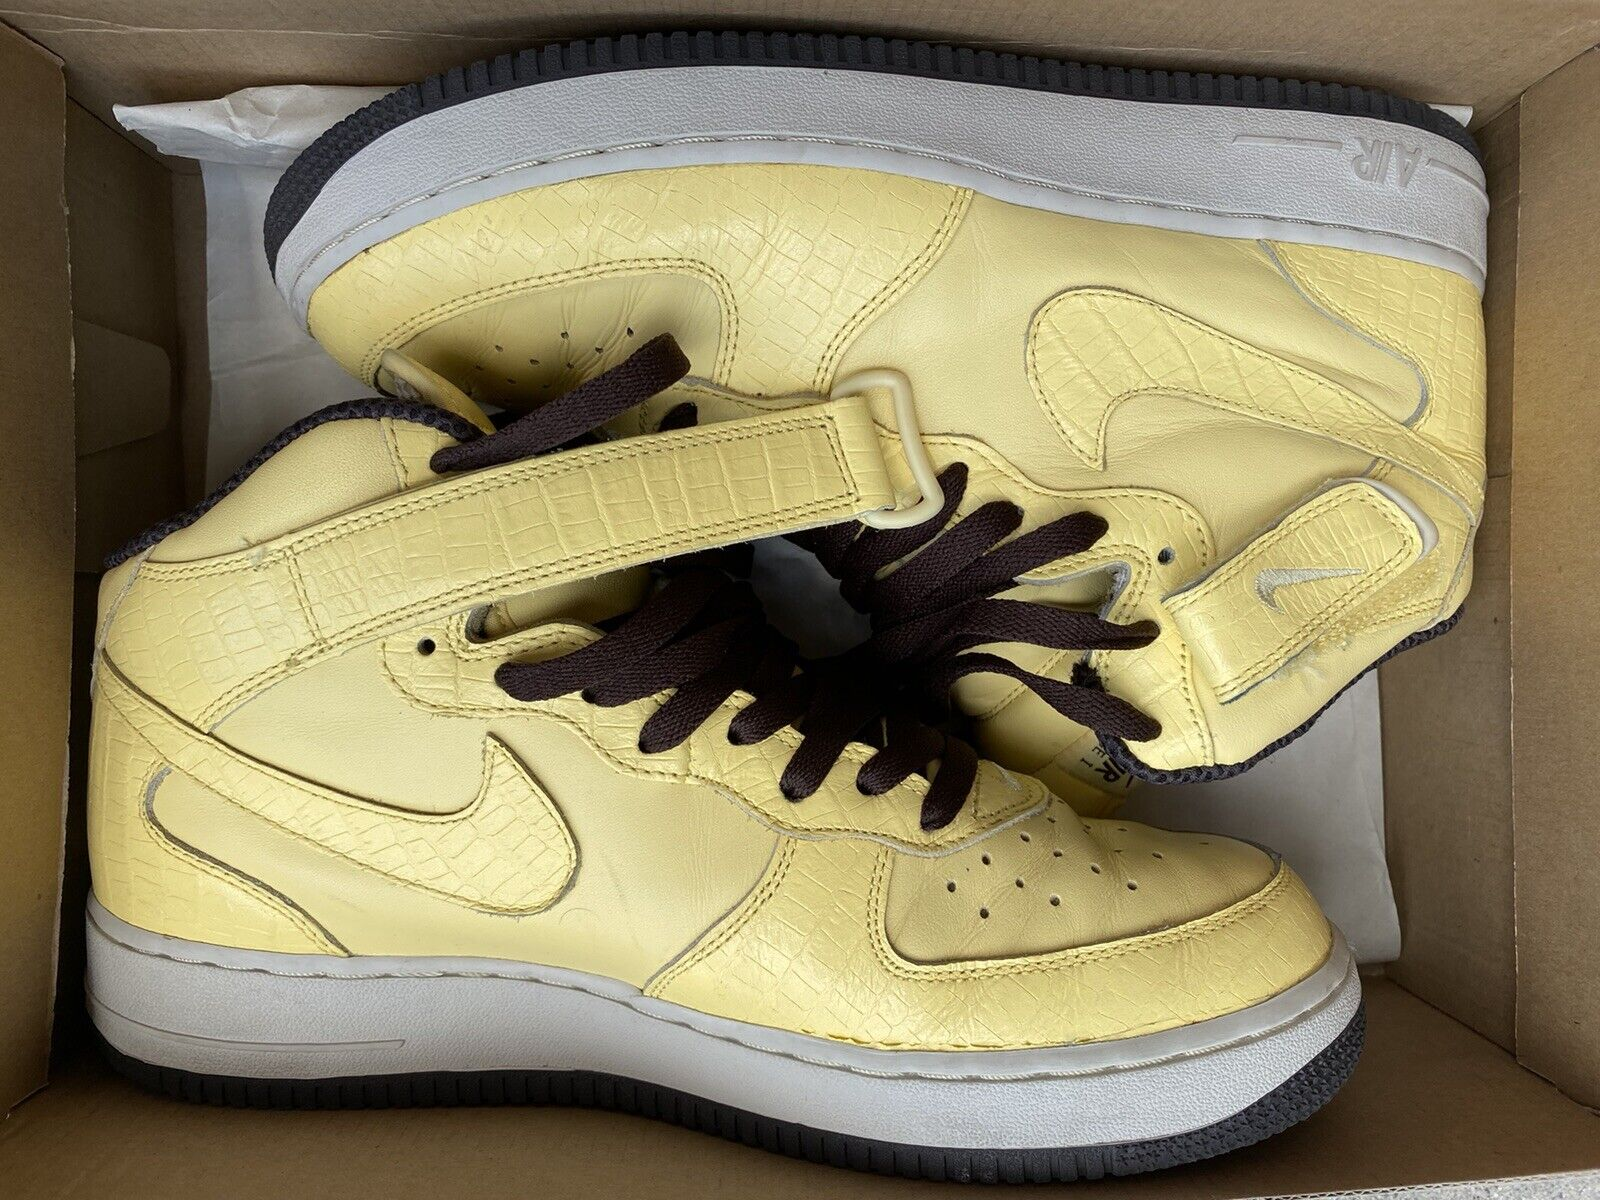 Nike Air Force 1 Mid Butter Yellow WMNS 12 MNS 10.5